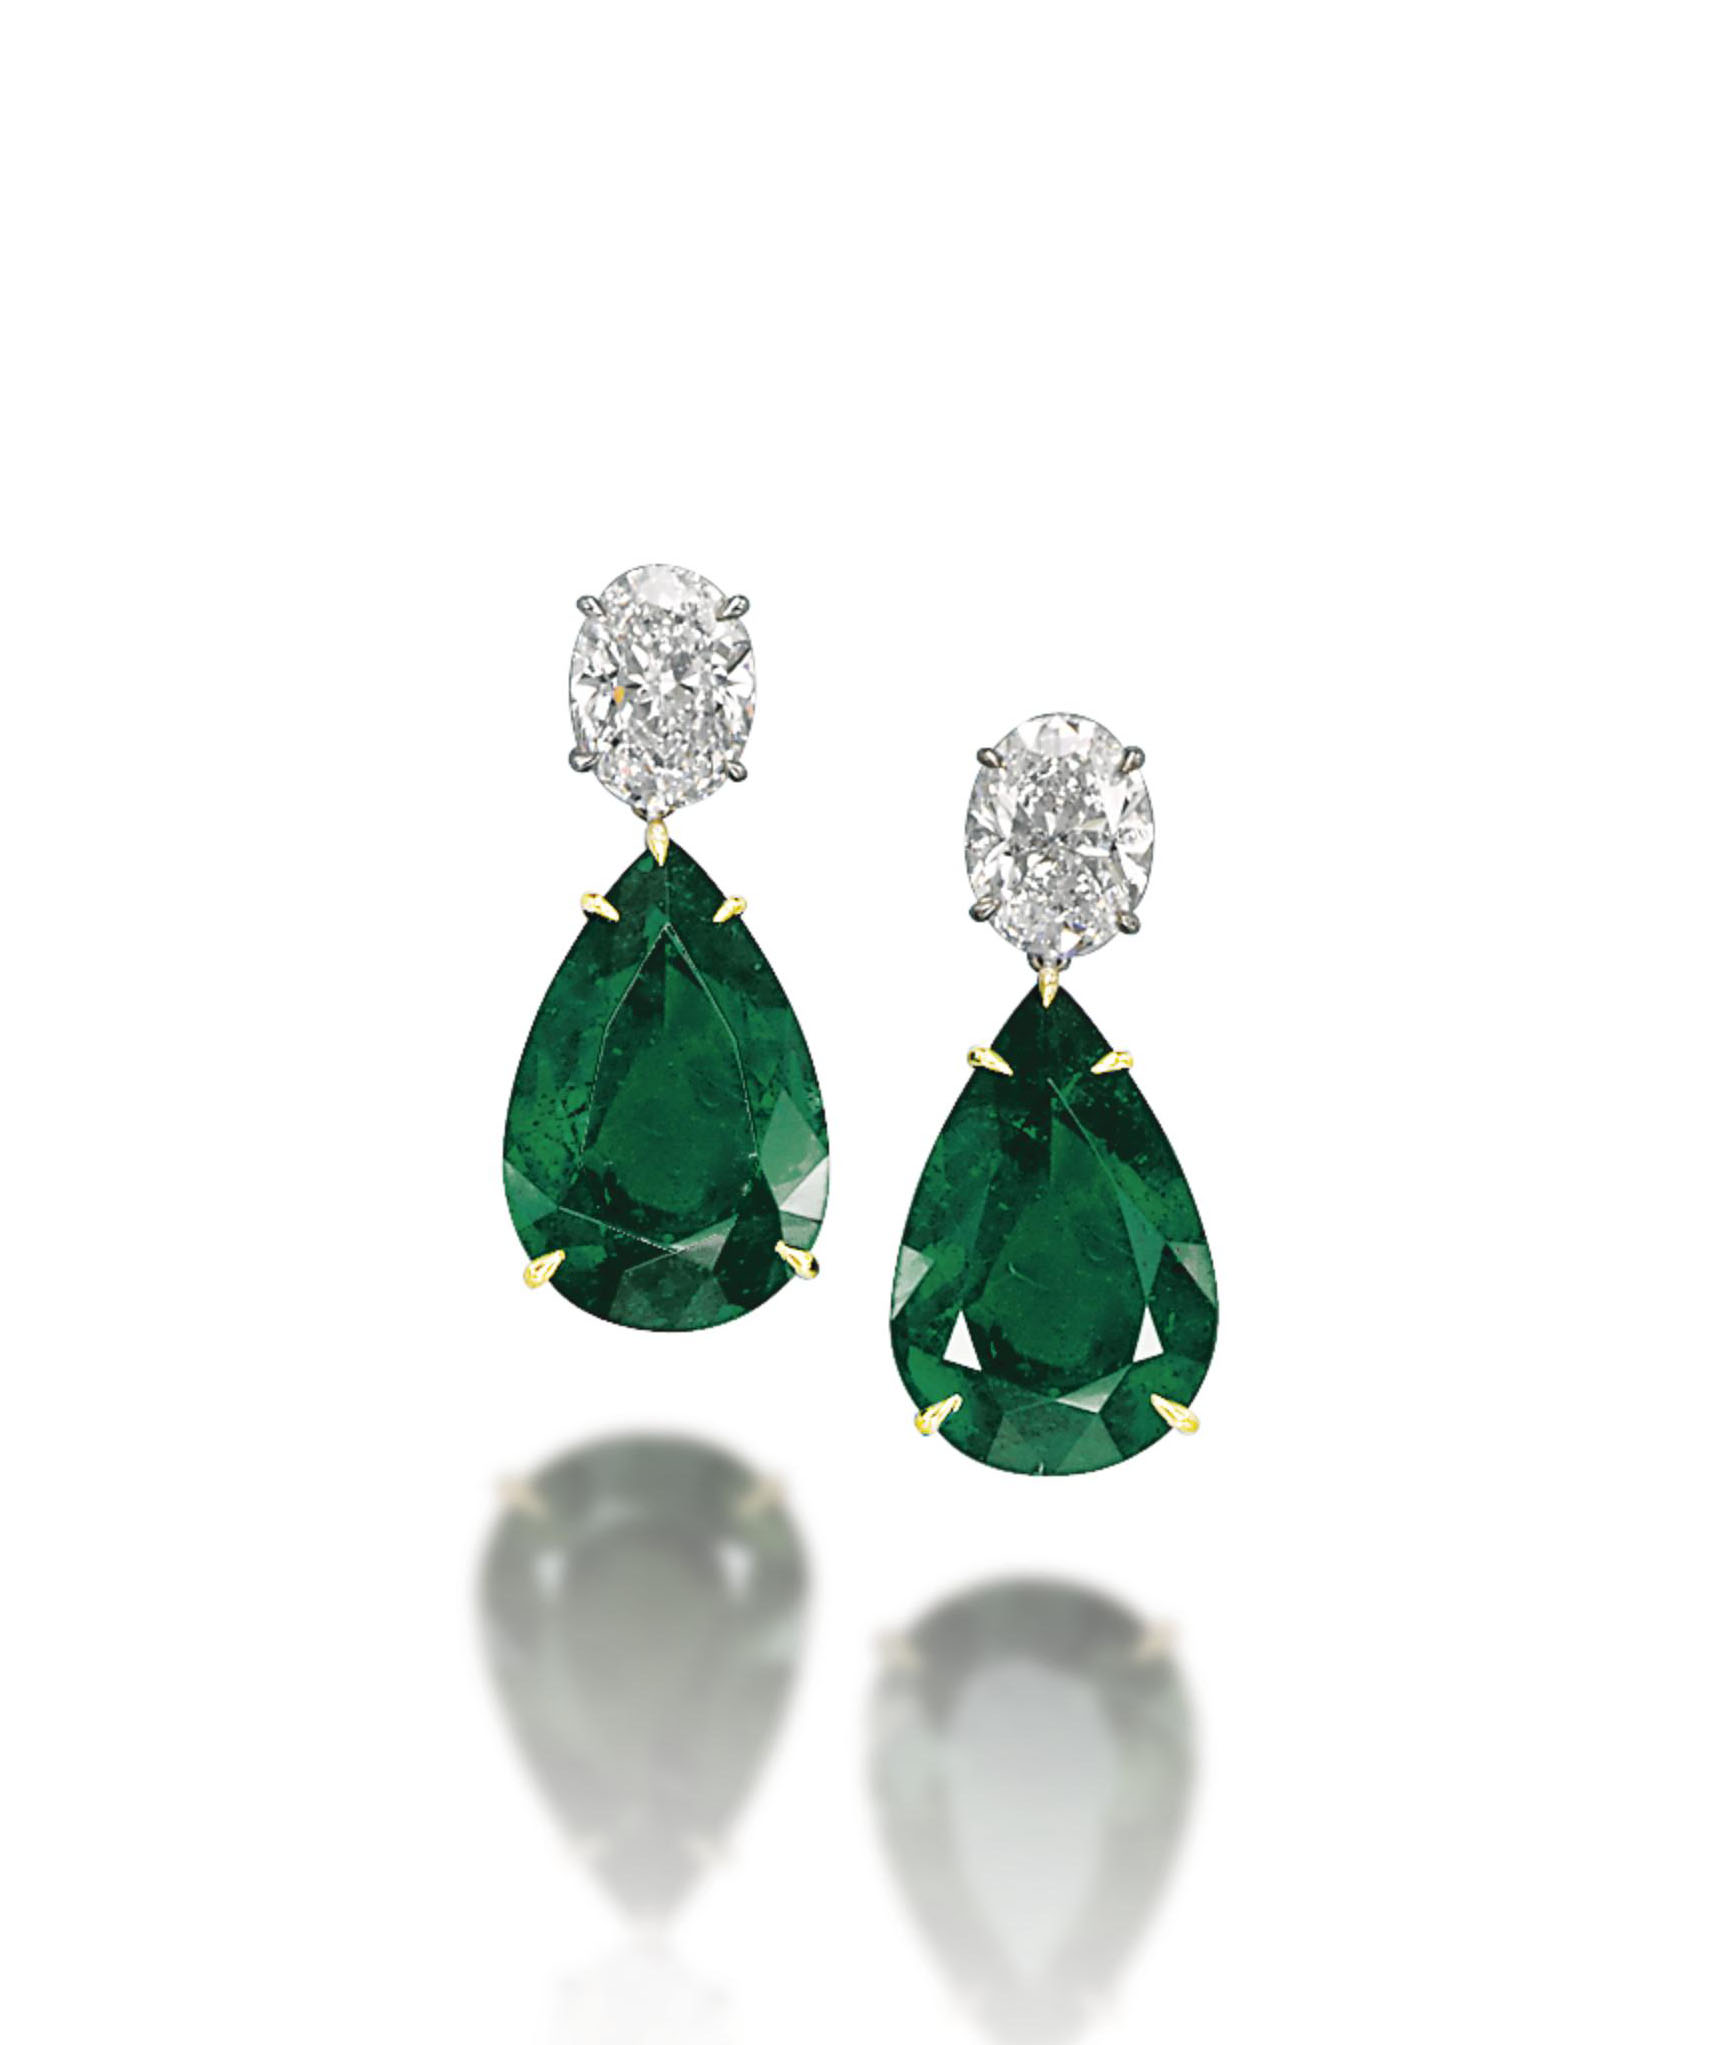 A PAIR OF EMERALD AND DIAMOND EAR PENDANTS, BY CHATILA